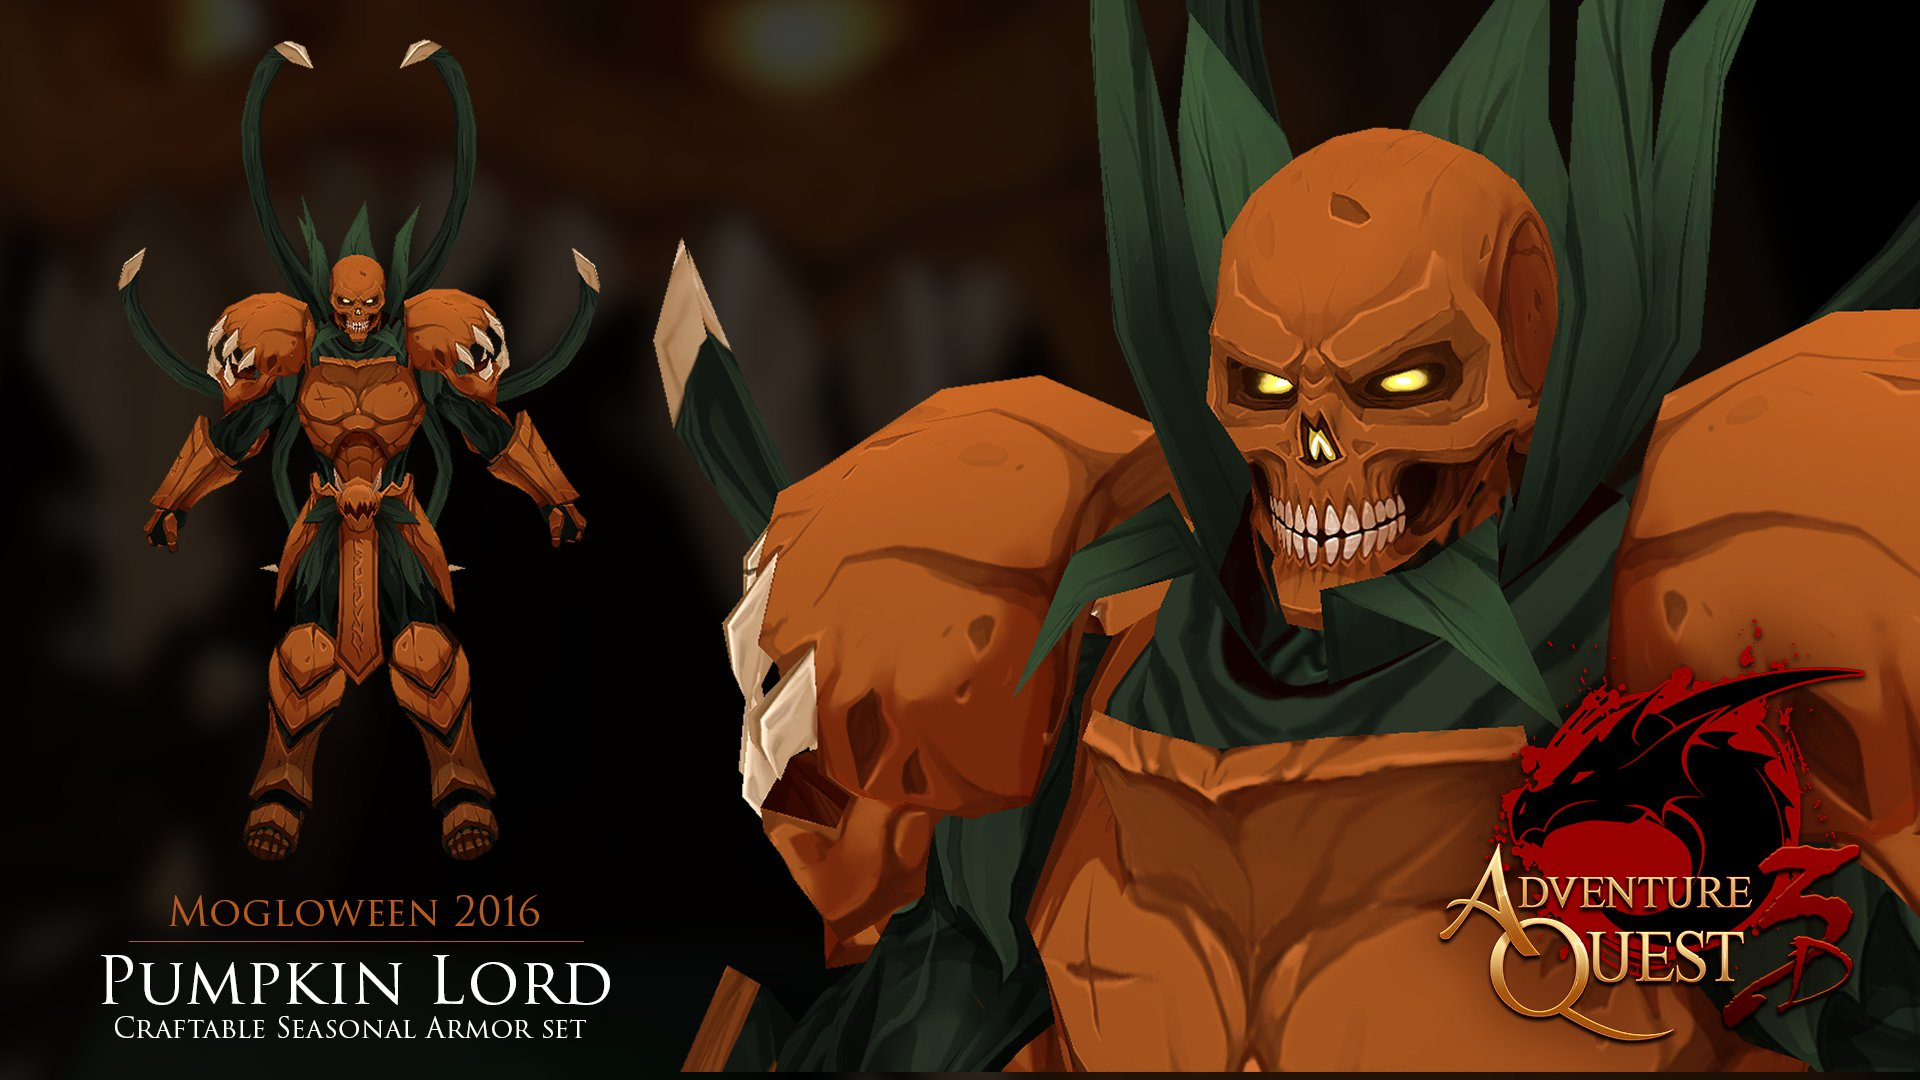 Preview: AQ3D Pushes Towards Open Beta - MMO Bomb